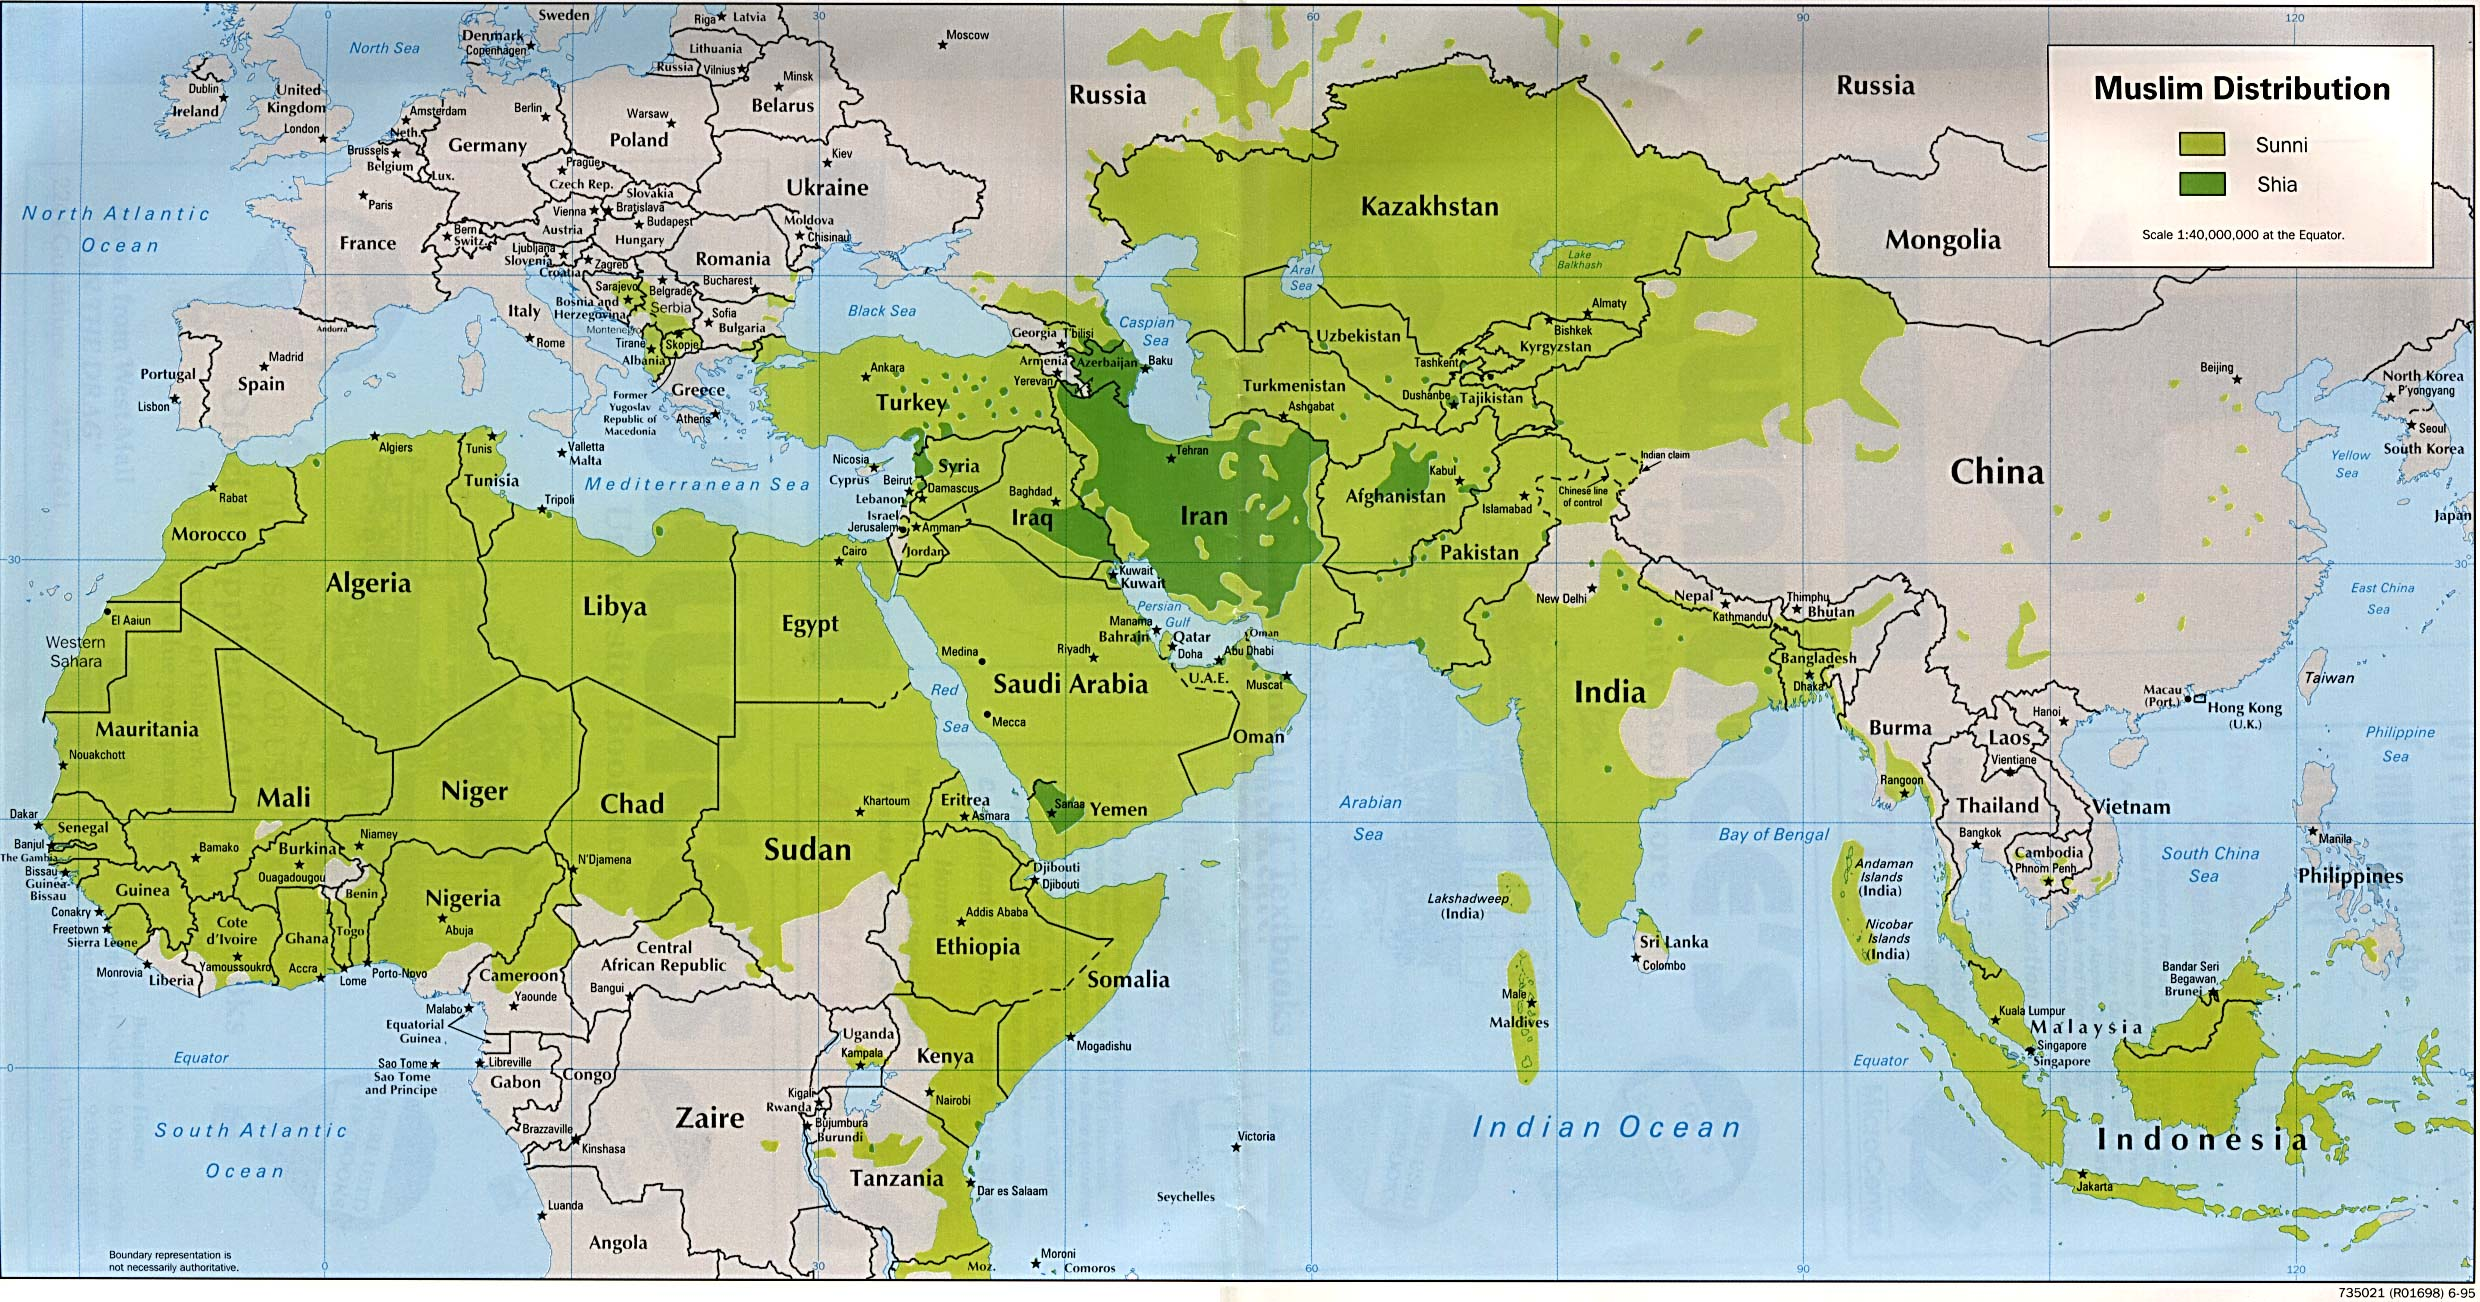 Utexas edu libs pcl mapcollection worldmaps muslimdistribution